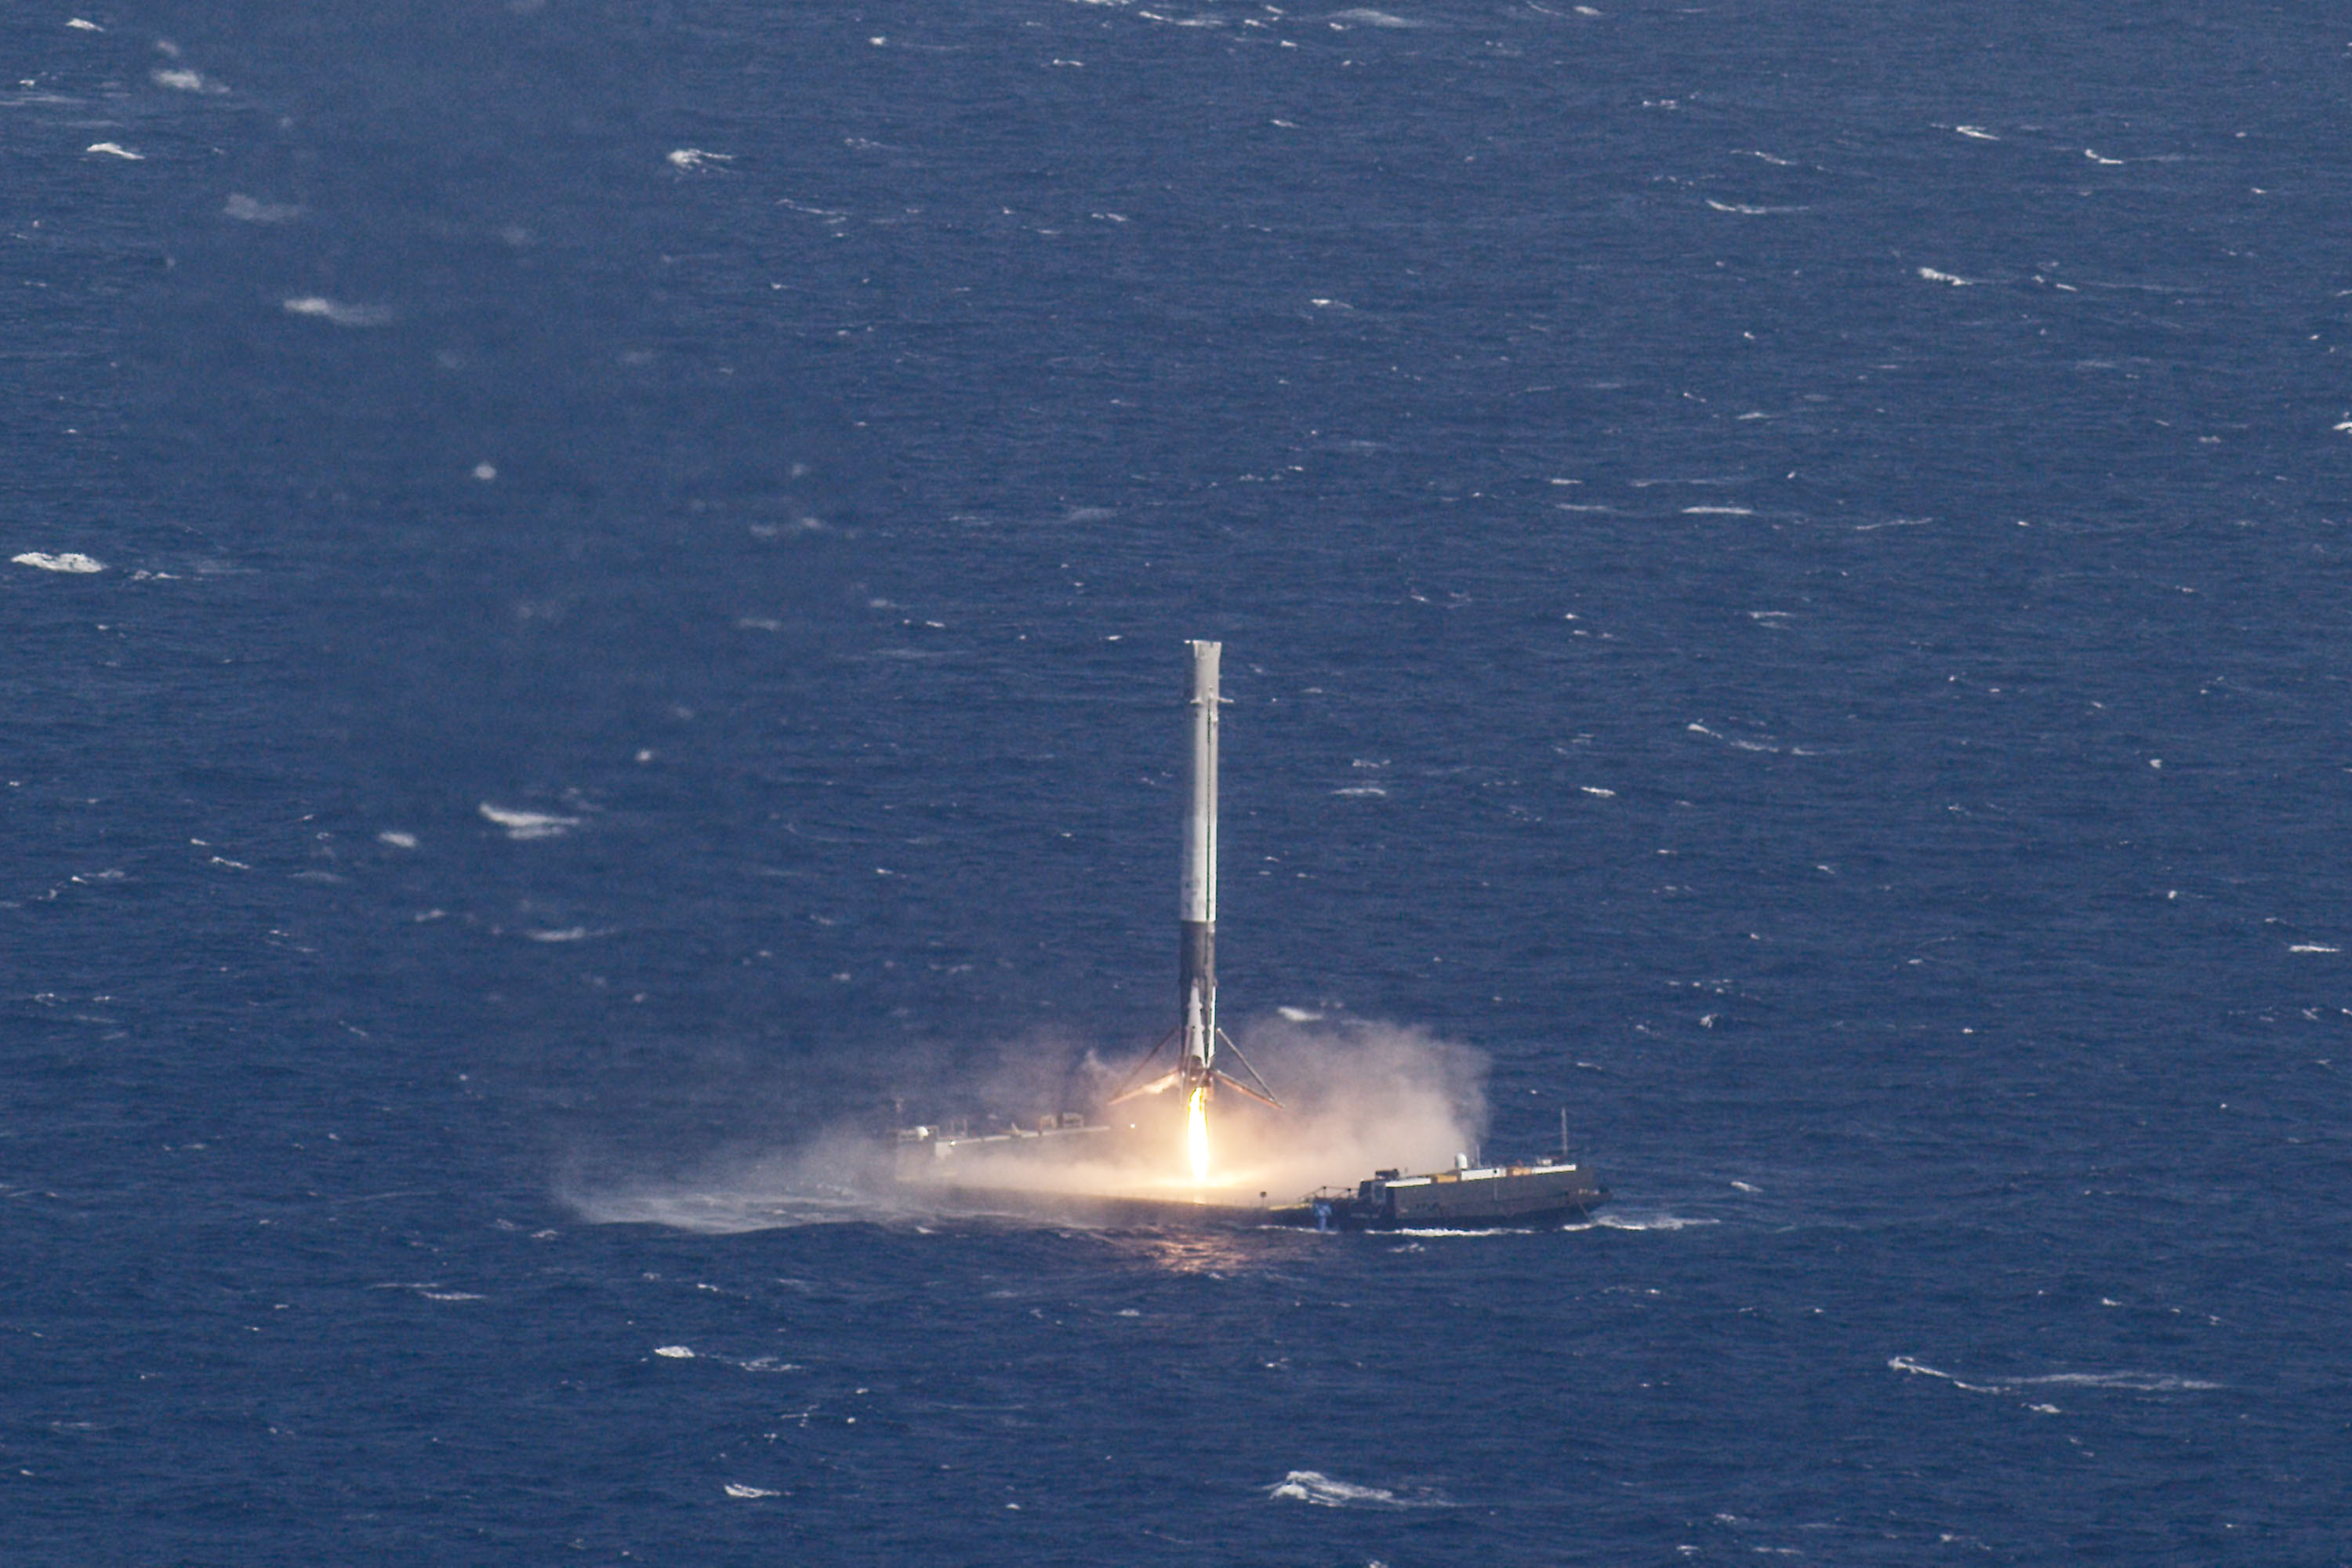 SpaceX's Falcon 9 rocket makes its first successful landing at sea, April 8, 2016.